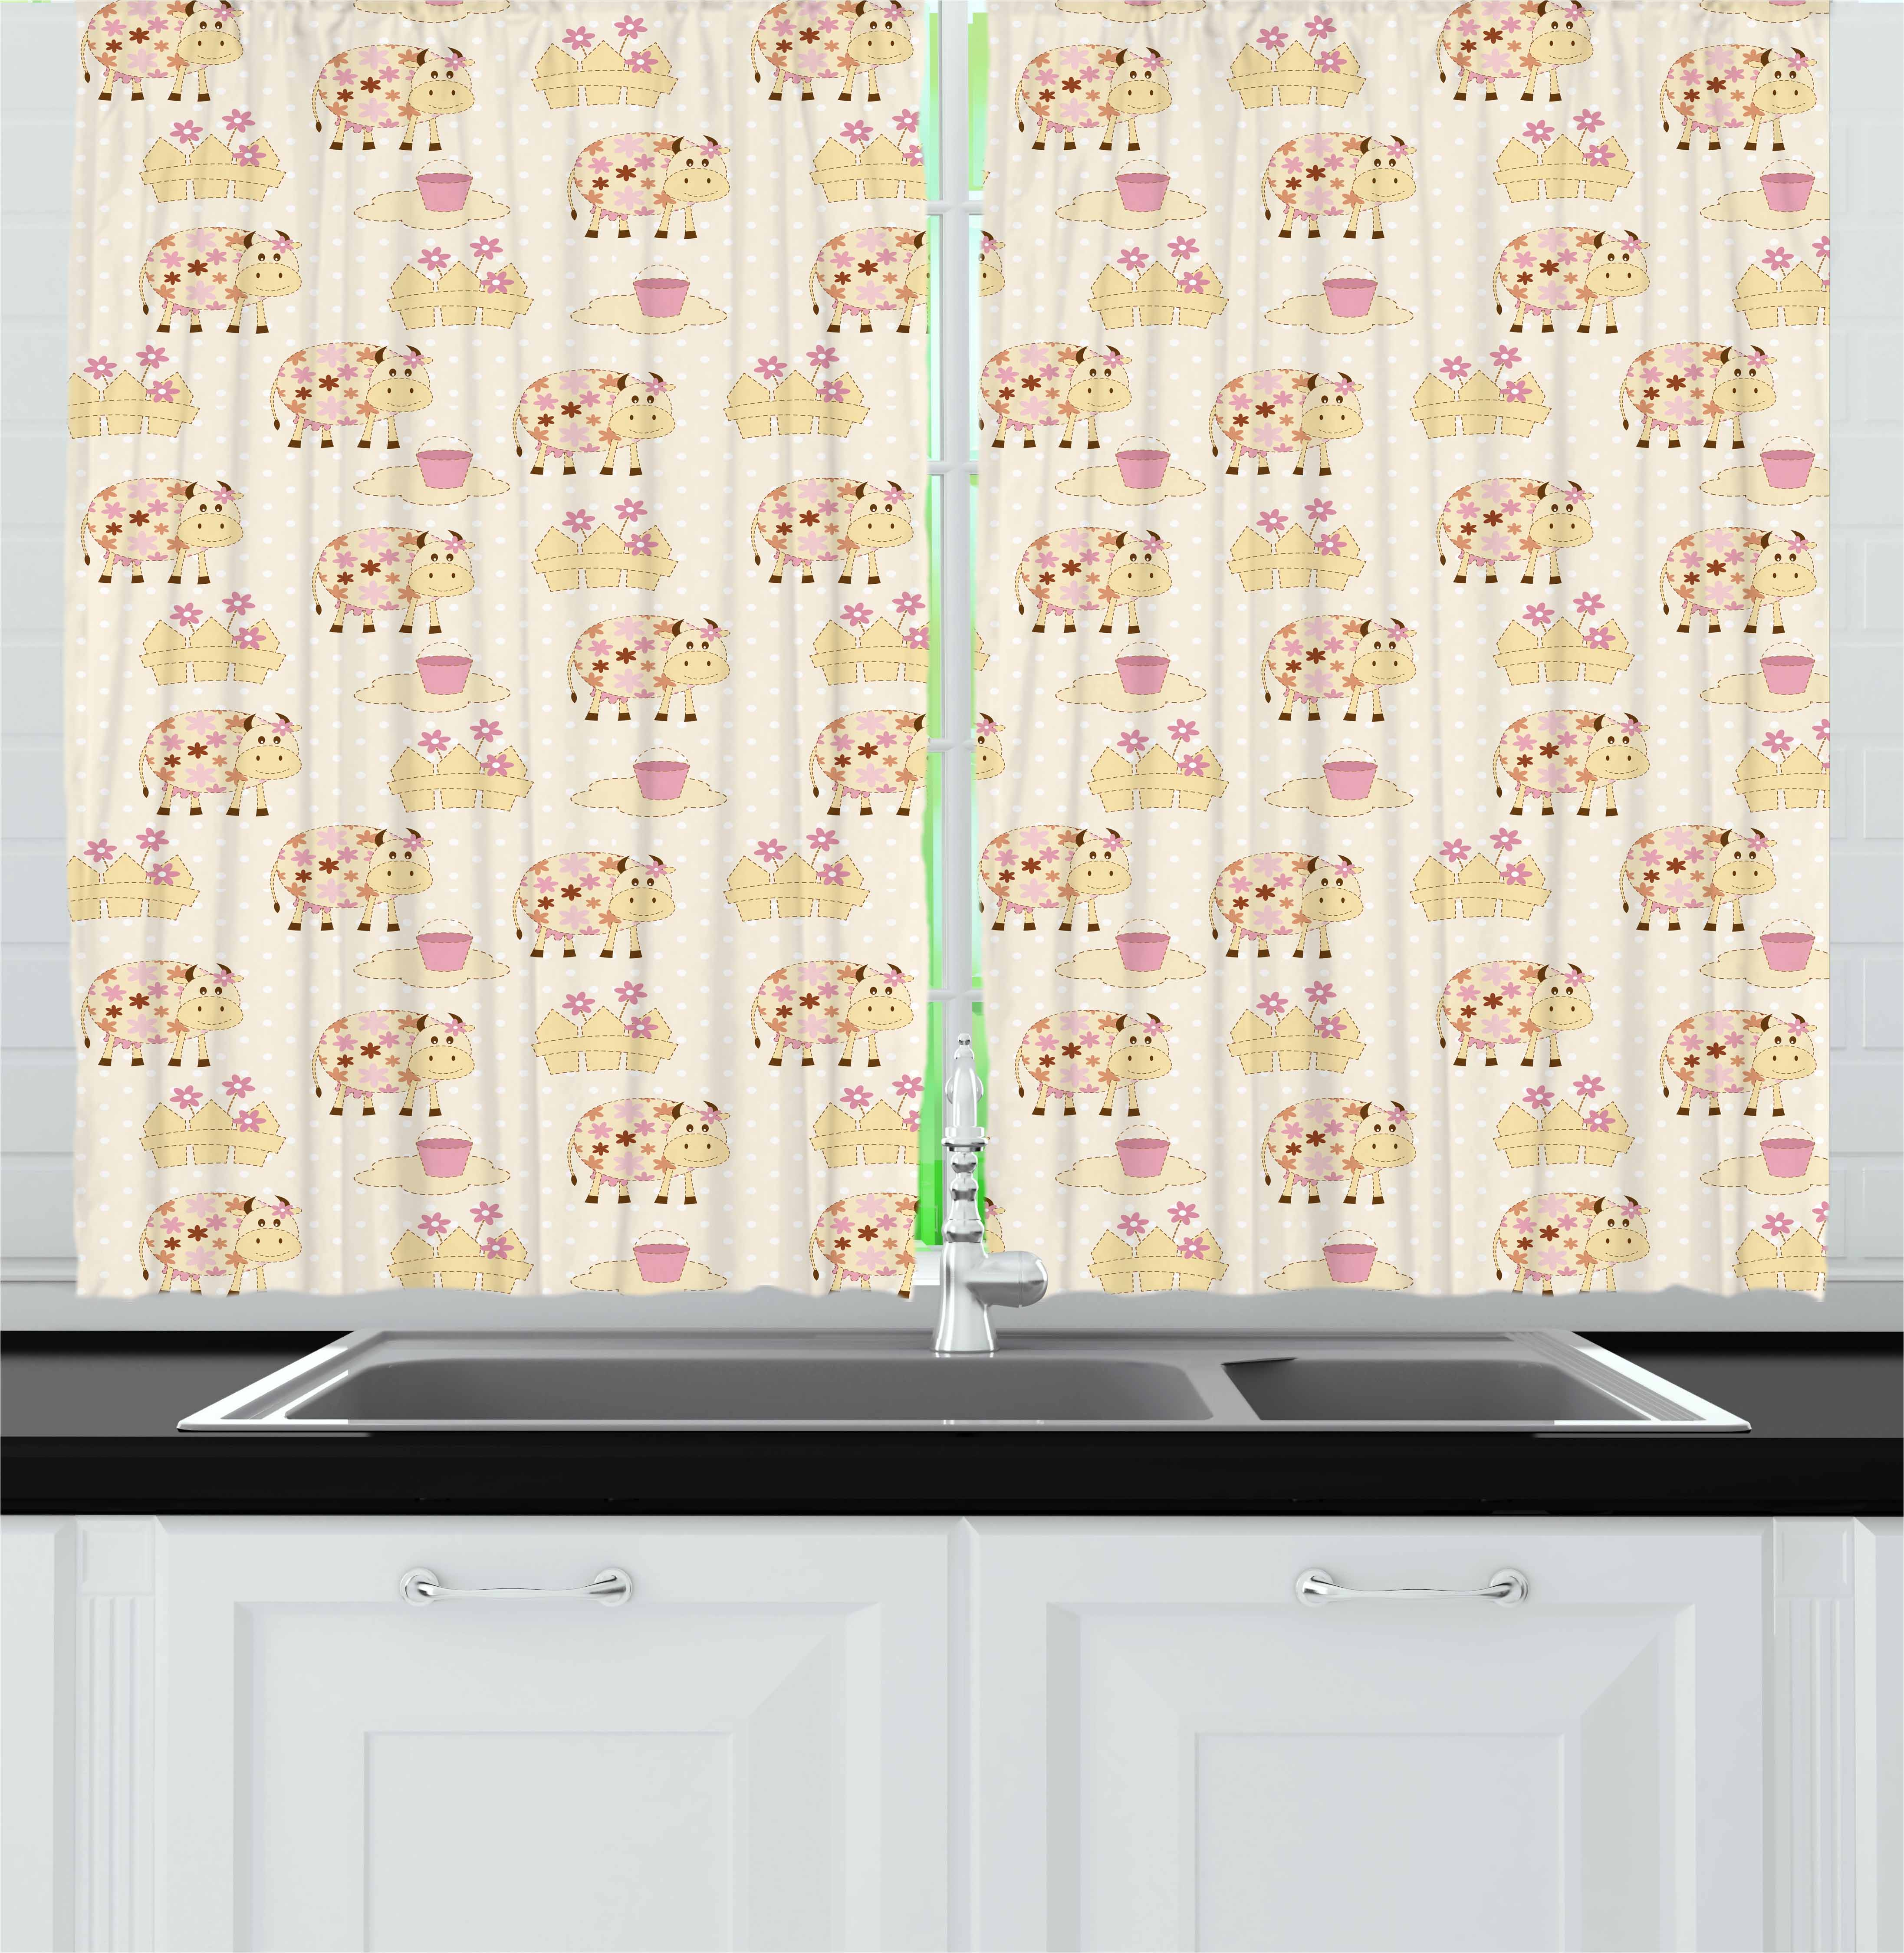 Kids Curtains 2 Panels Set, Cows with Flowers on Polka Dots Agriculture Farm Animal Country Life Inspired, Window Drapes for Living Room Bedroom, 55W X 39L Inches, Cream Pink Brown, by Ambesonne